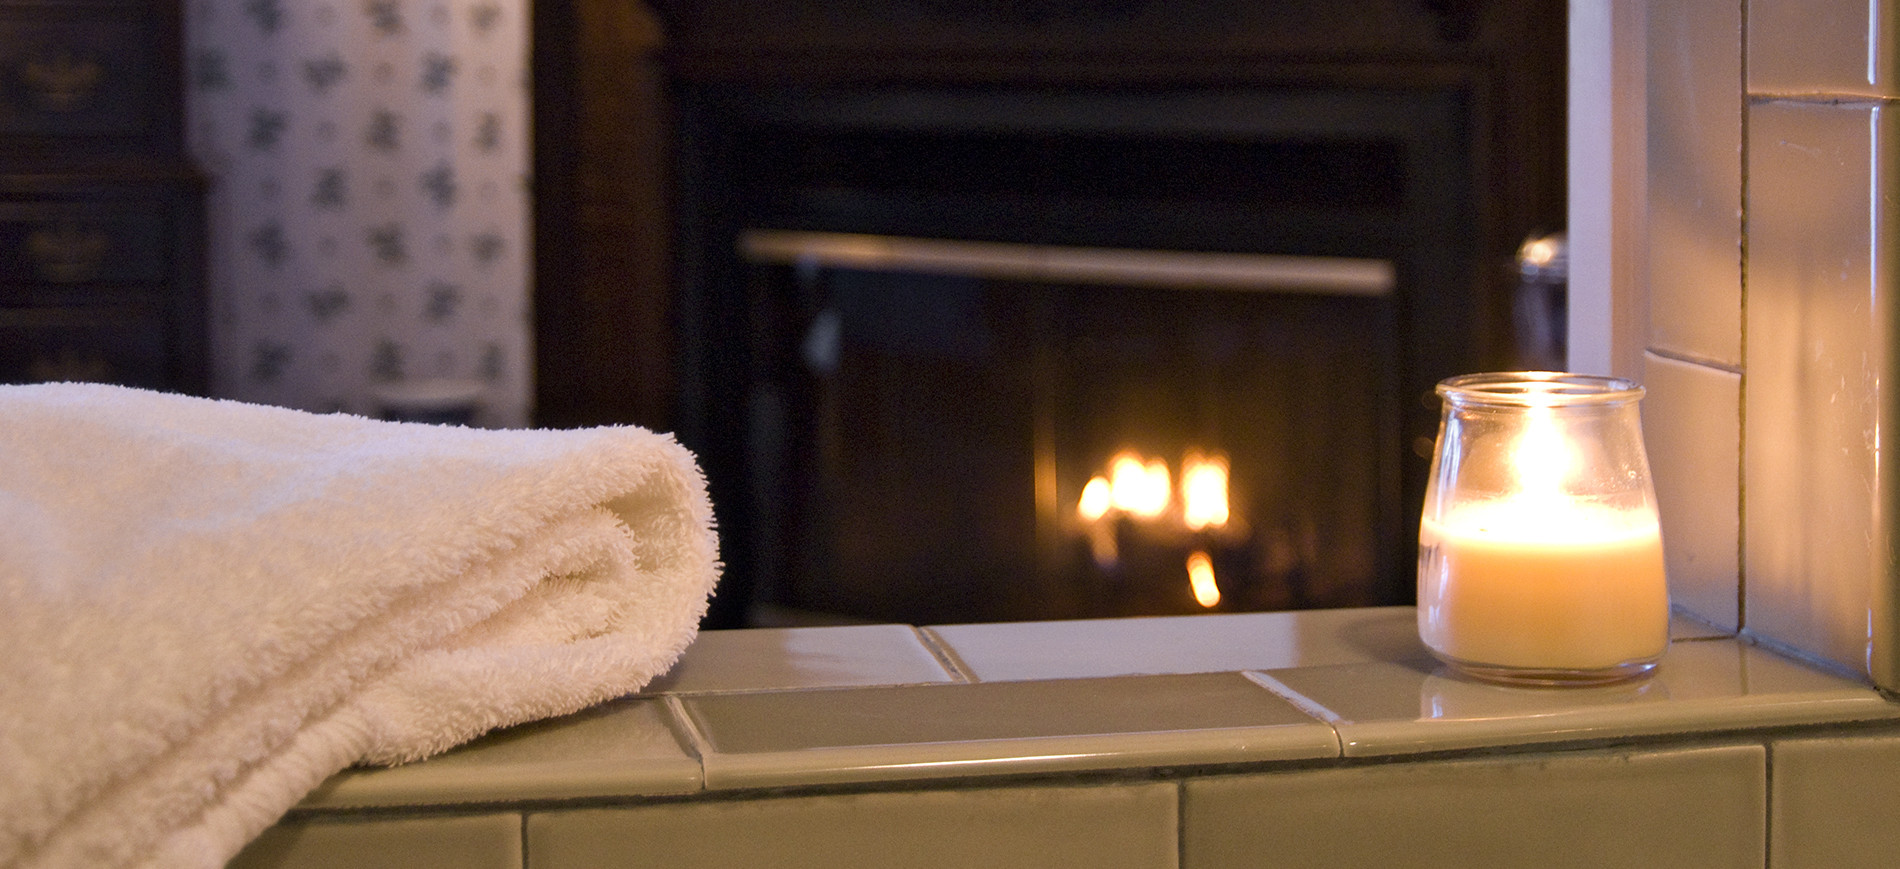 folded towel and candle on jetted tub with fireplace behind